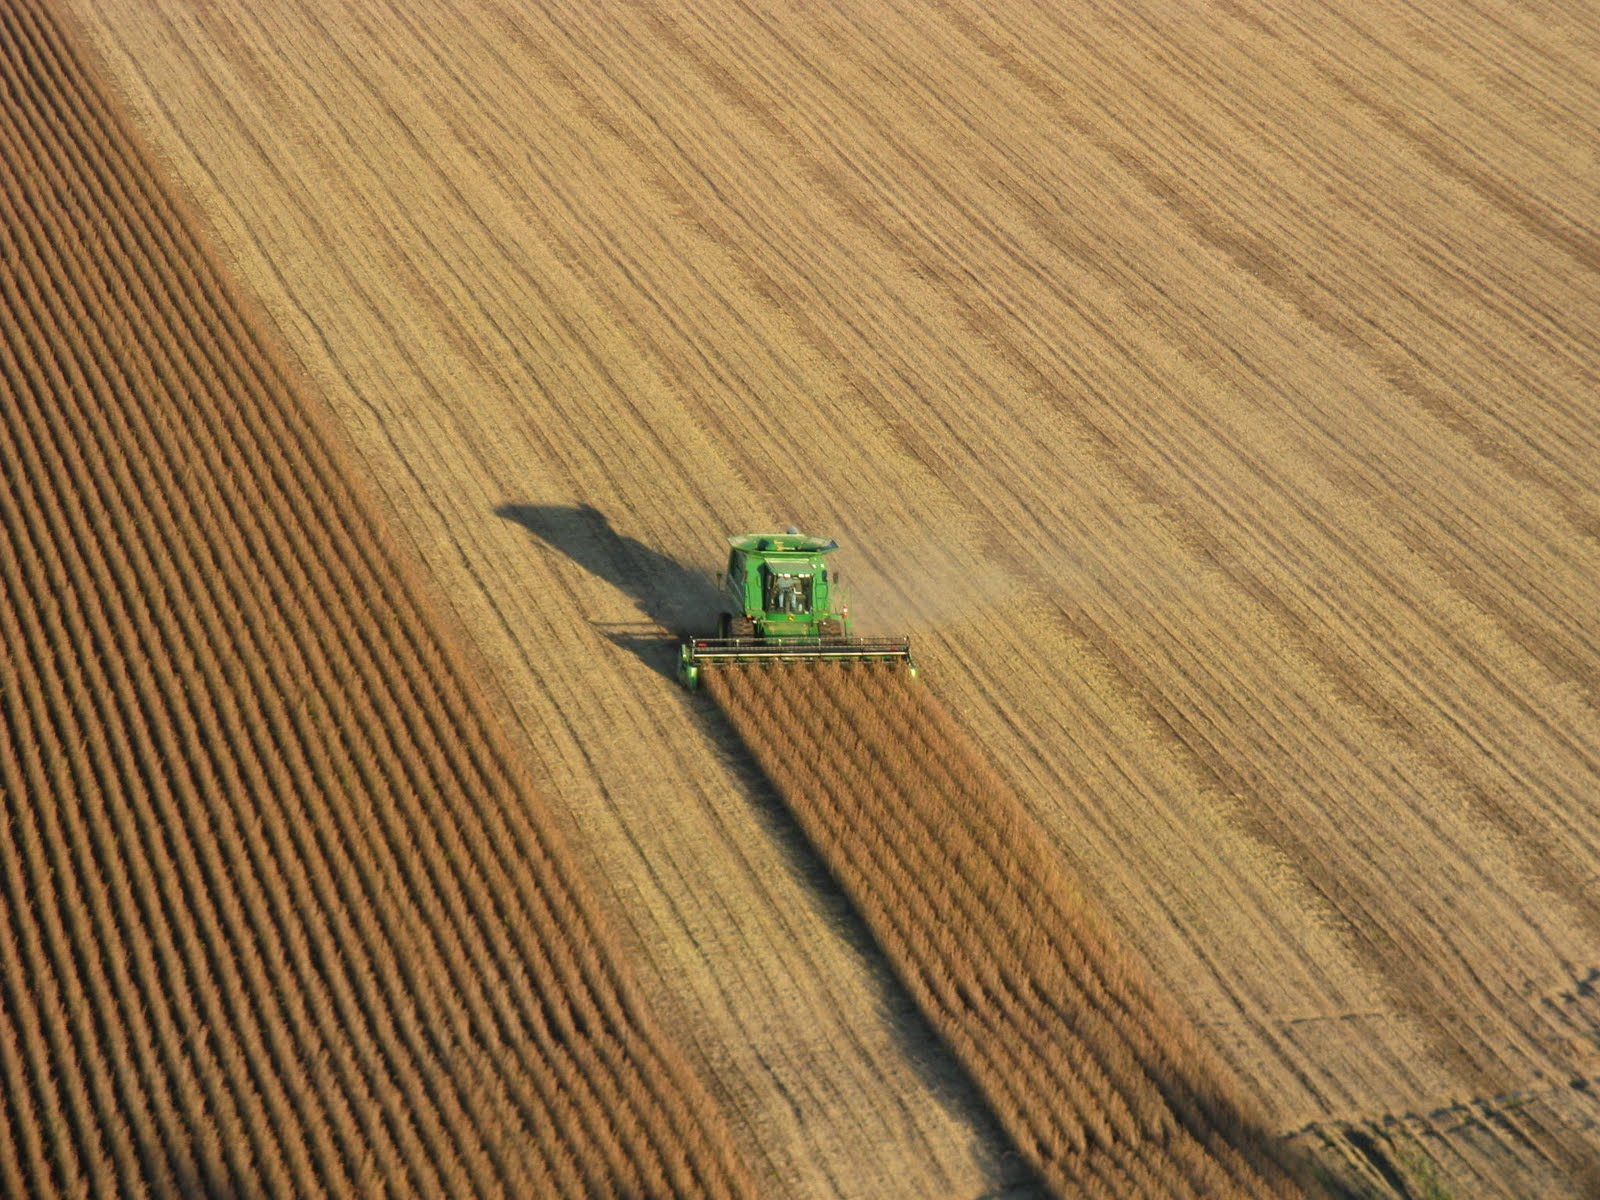 Photo: Neighbor Dale is hard at work harvesting soybeans